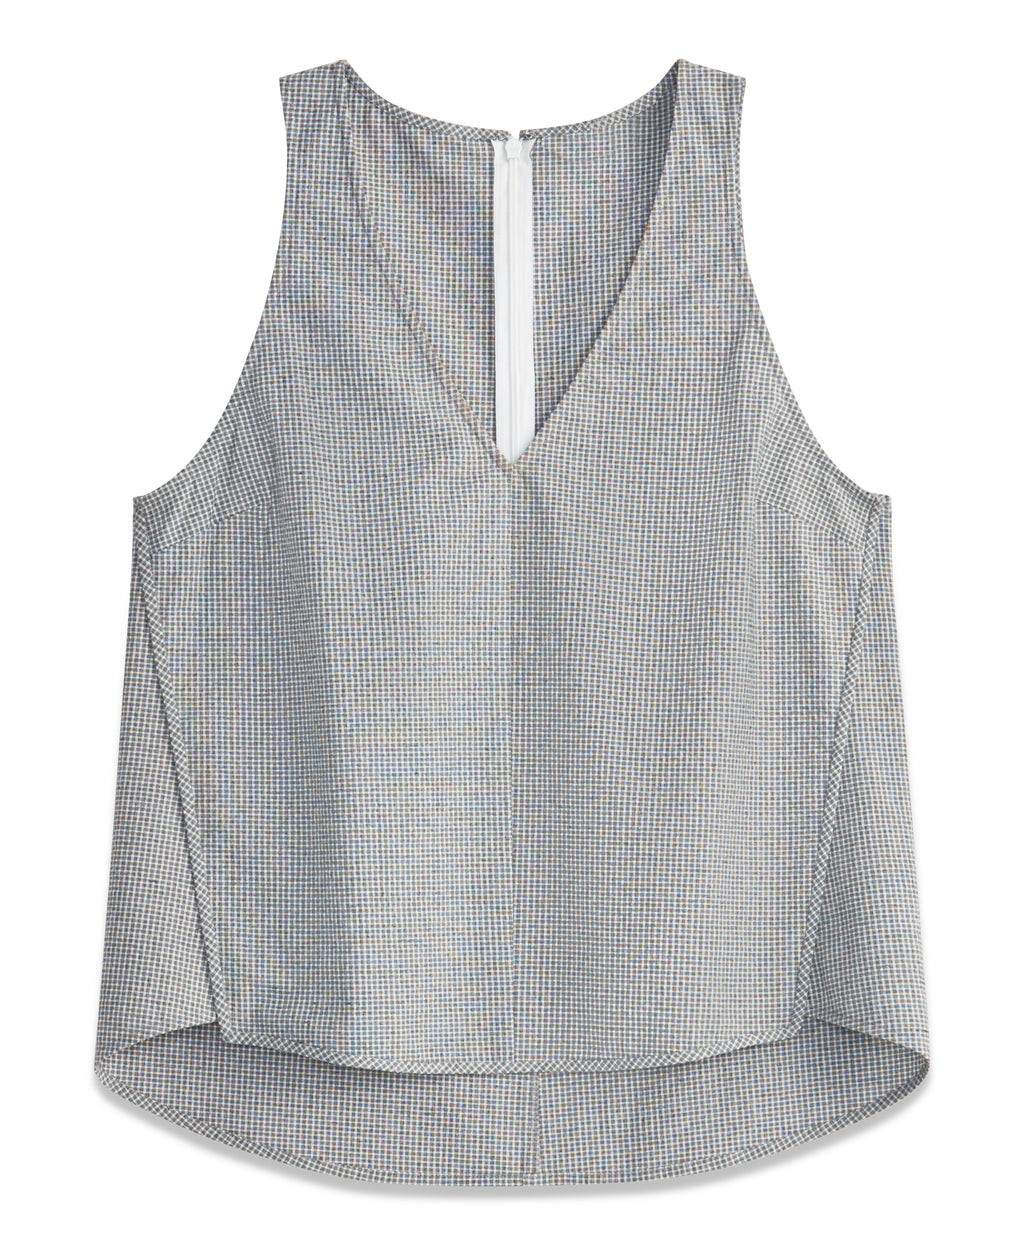 Sleeveless Top | Sleeveless Top